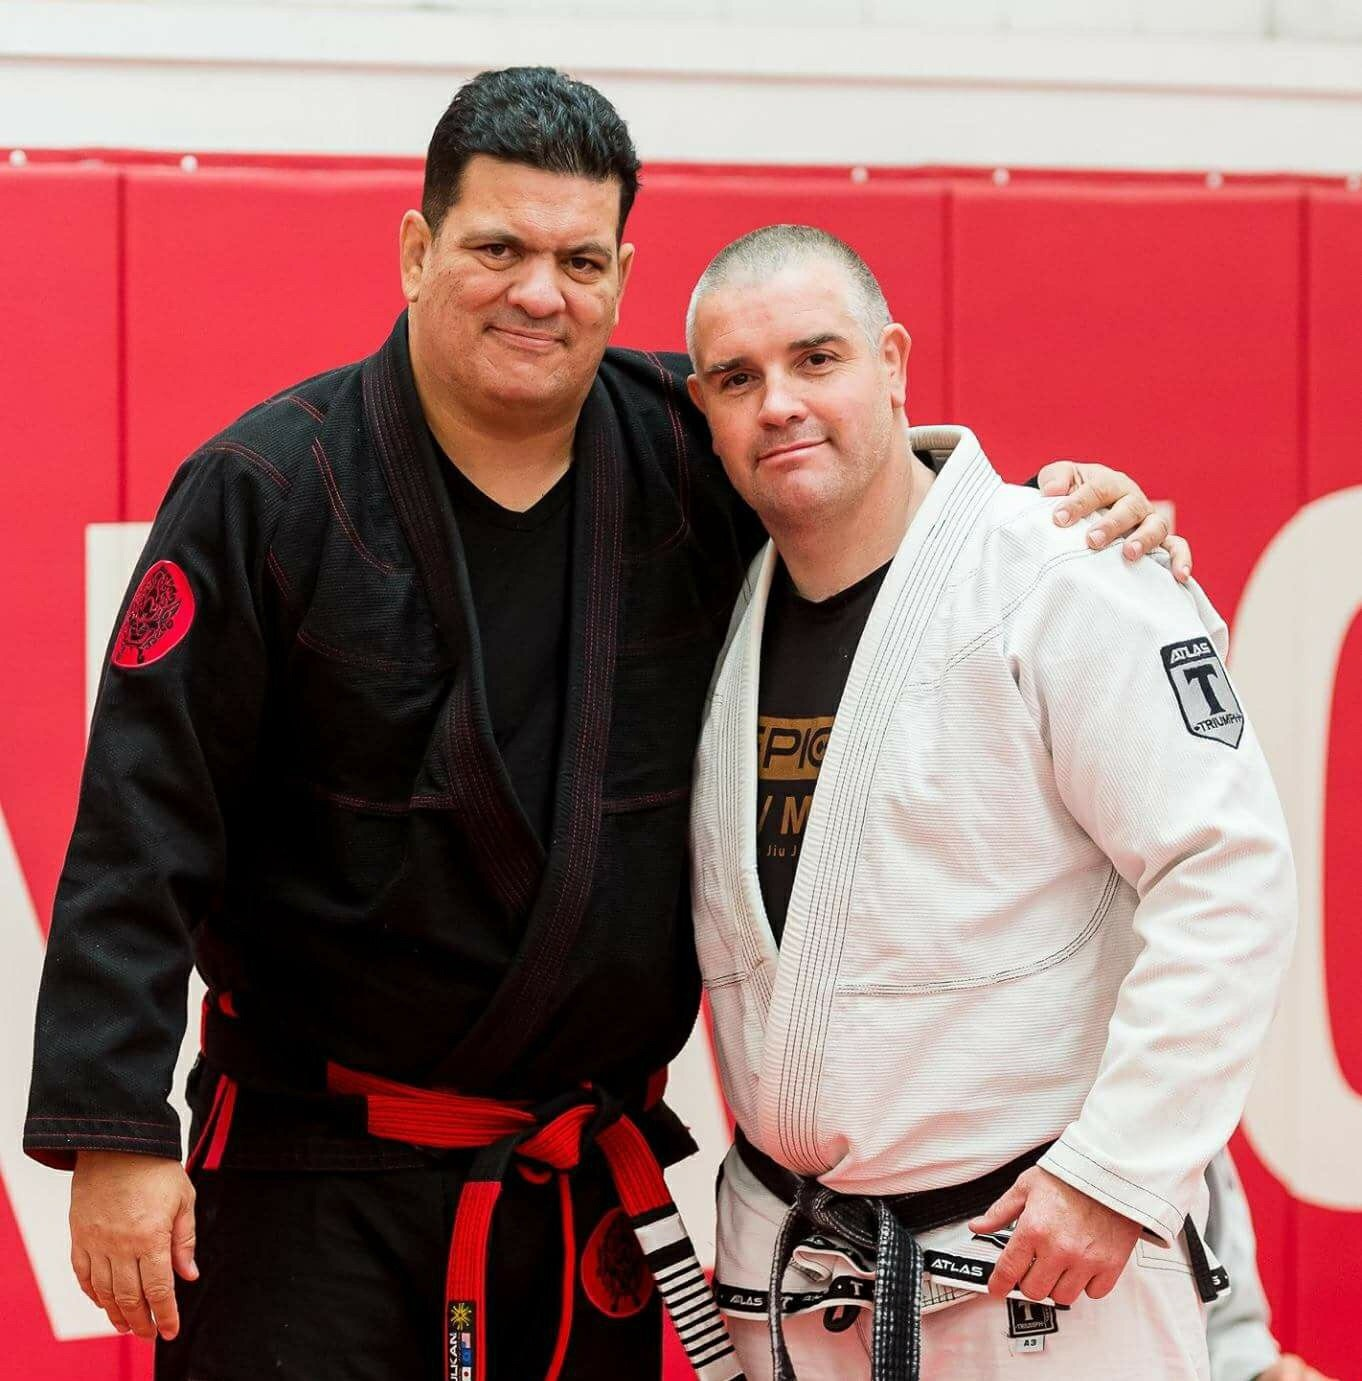 Rigan Machado and Danny Weir